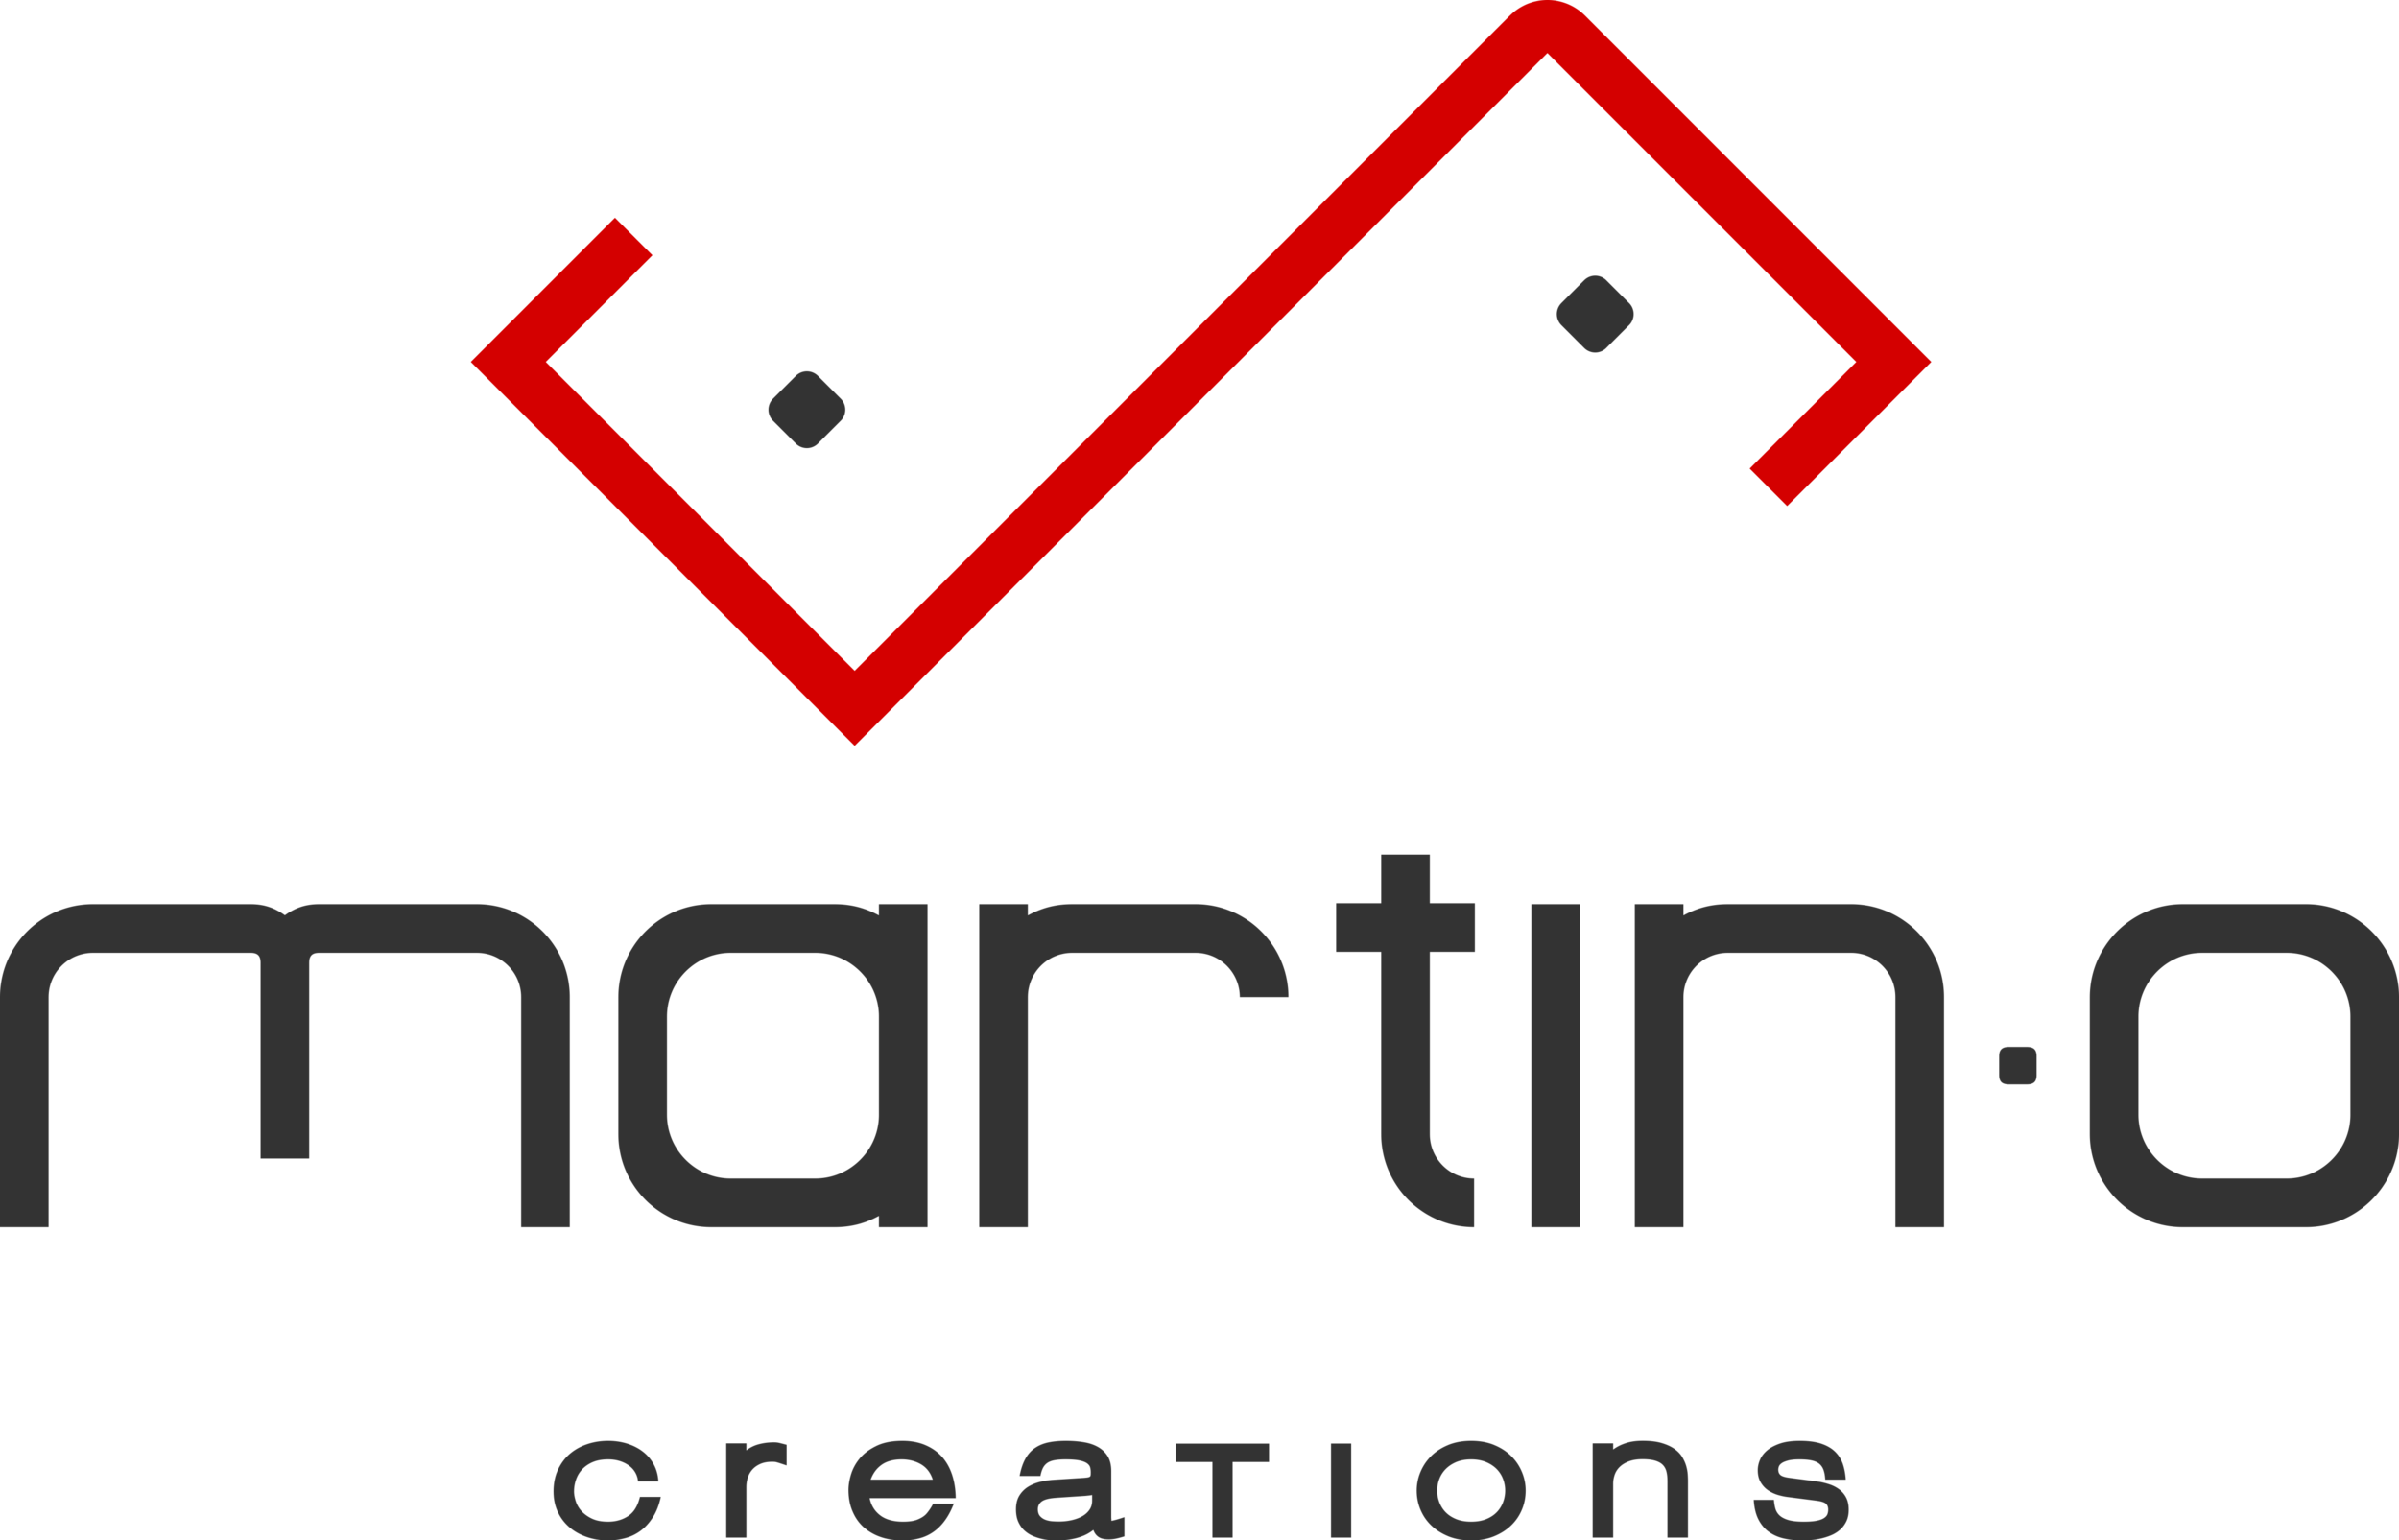 Martin-o Creations Logo For light   background 03-27-17.png